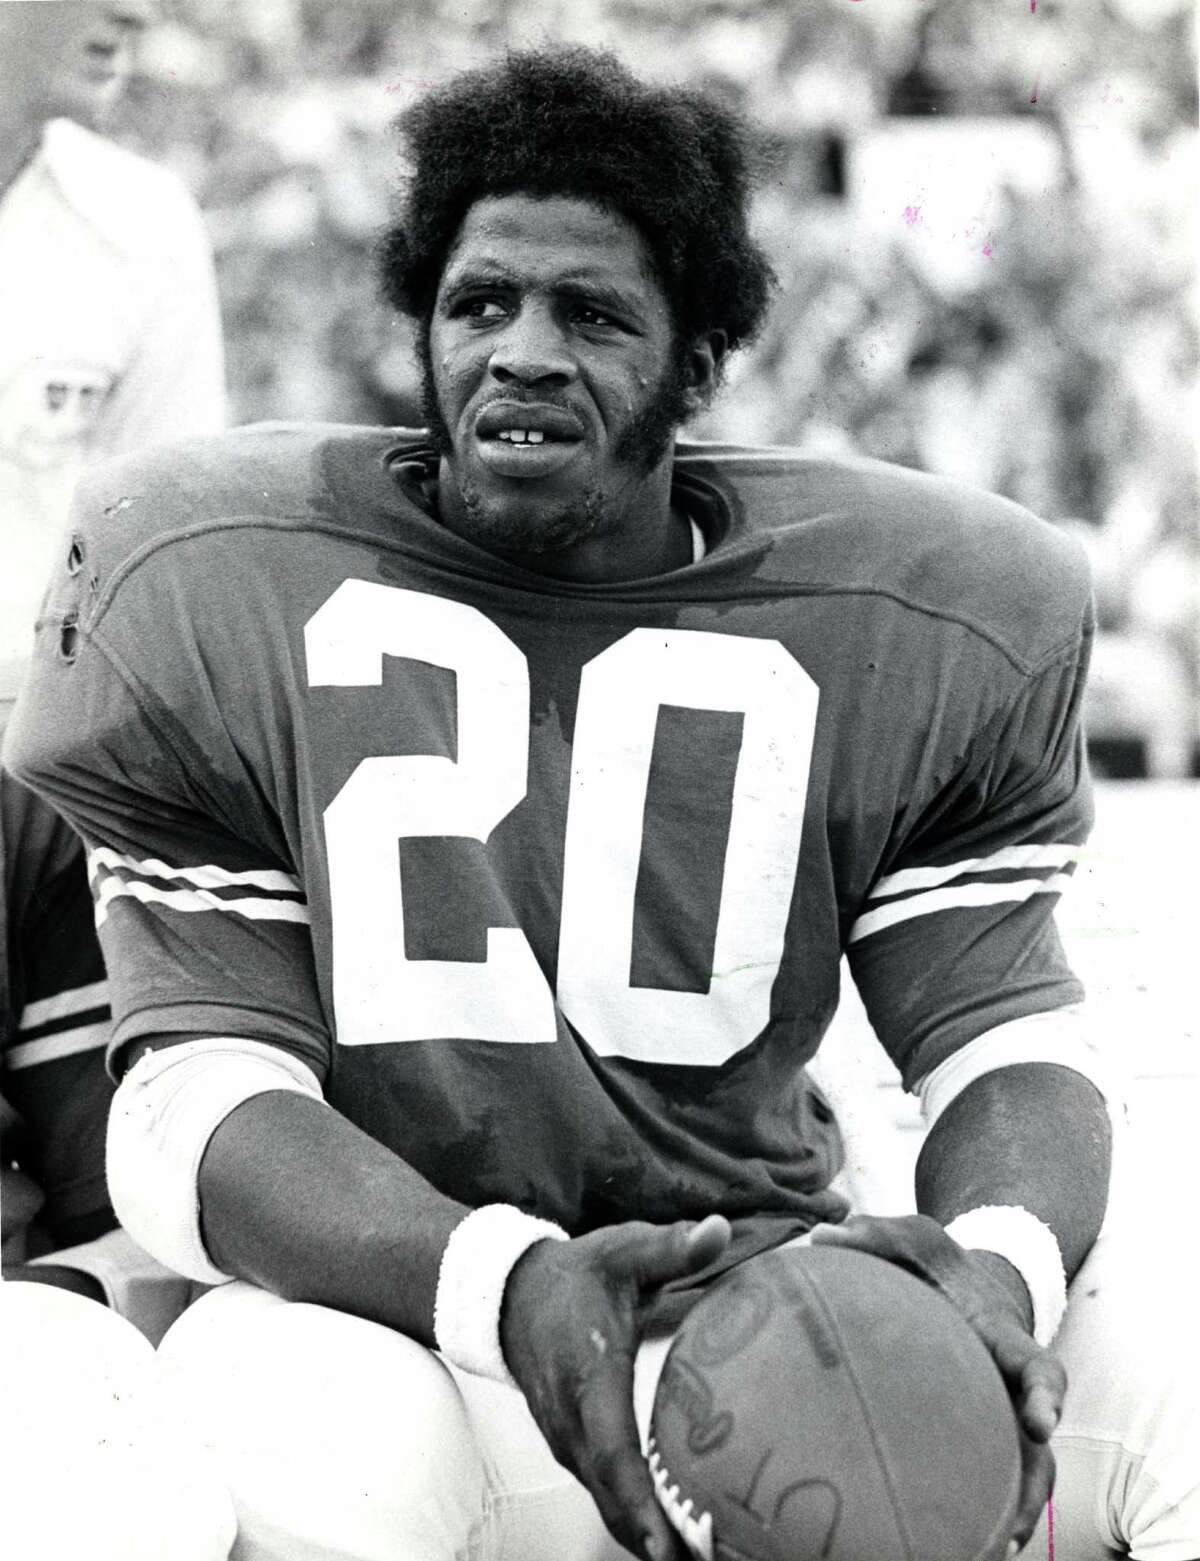 Earl Campbell was an All-American and won the Heisman Trophy at Texas.